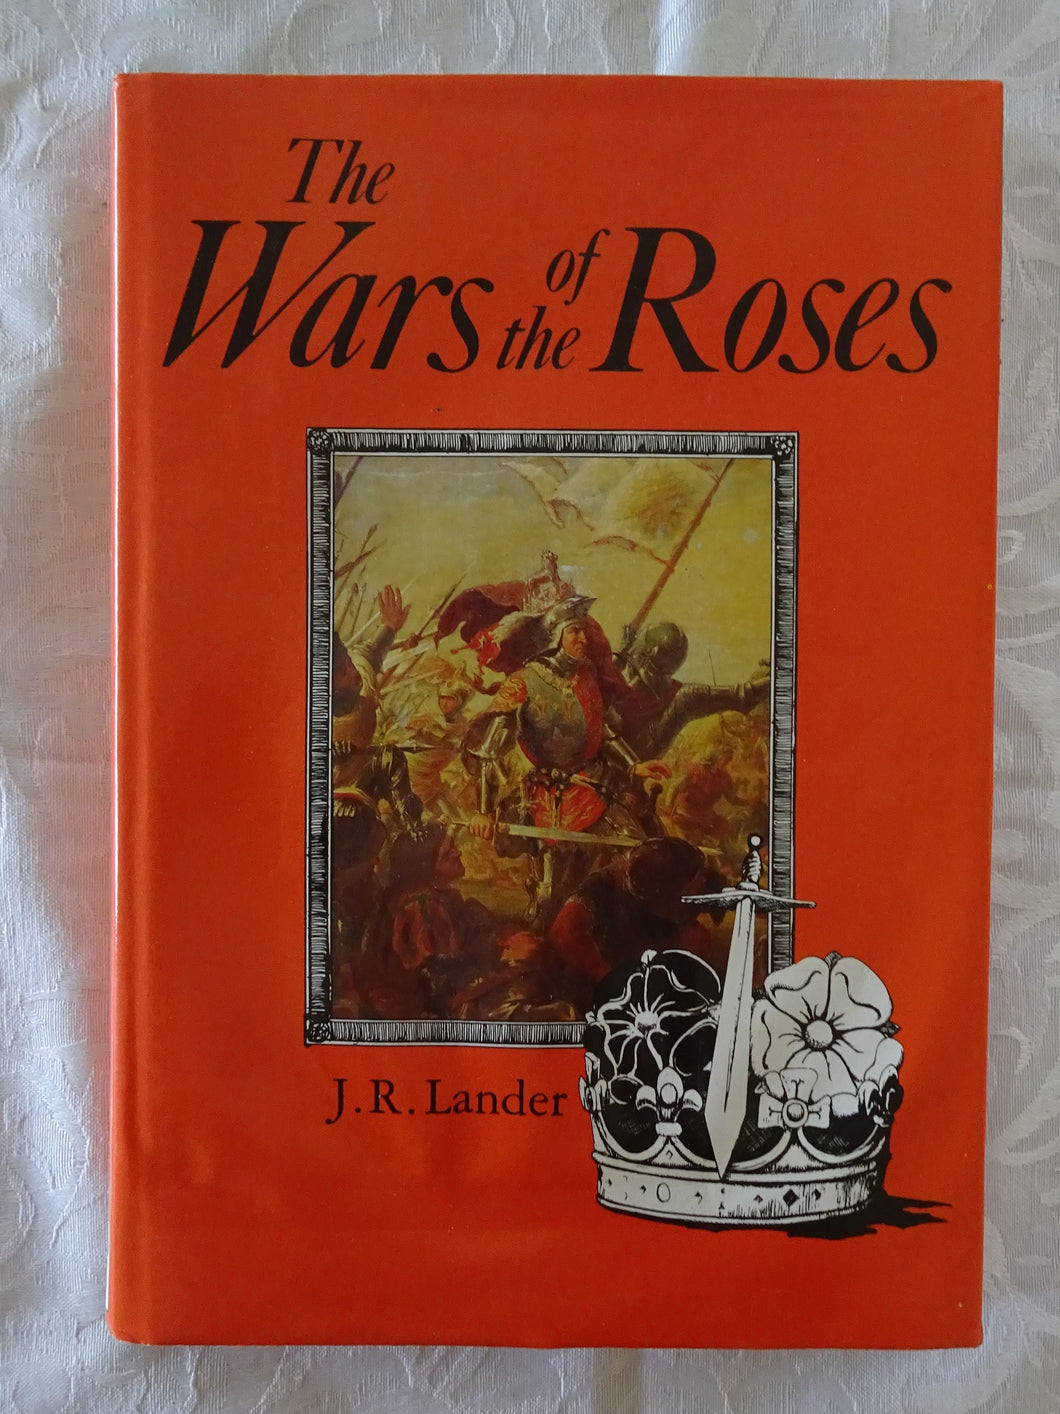 The War of the Roses by J. R. Lander